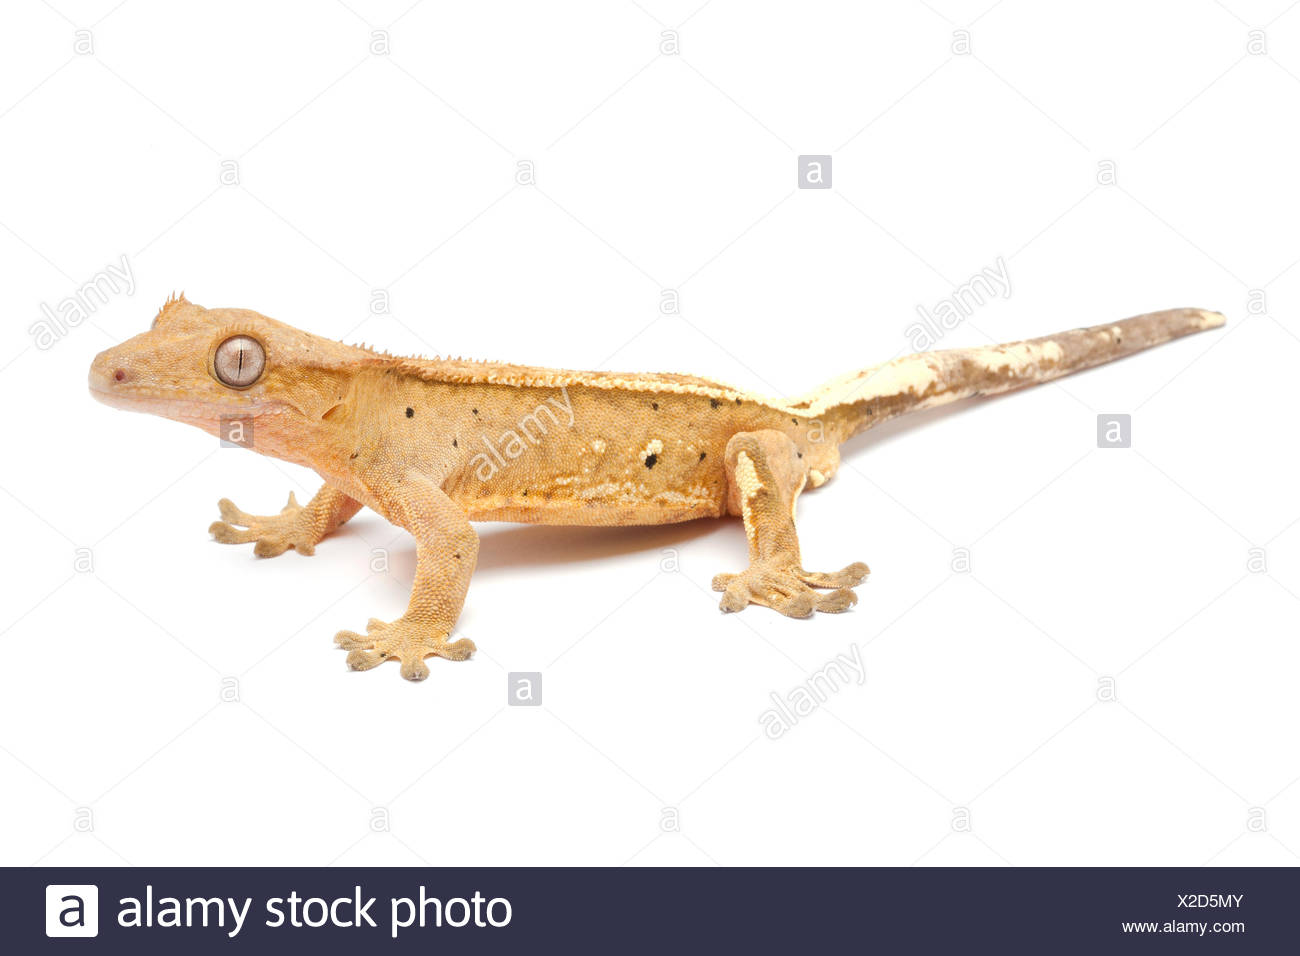 New Caledonia Crested Geck 'pin striped' on white background - Stock Image